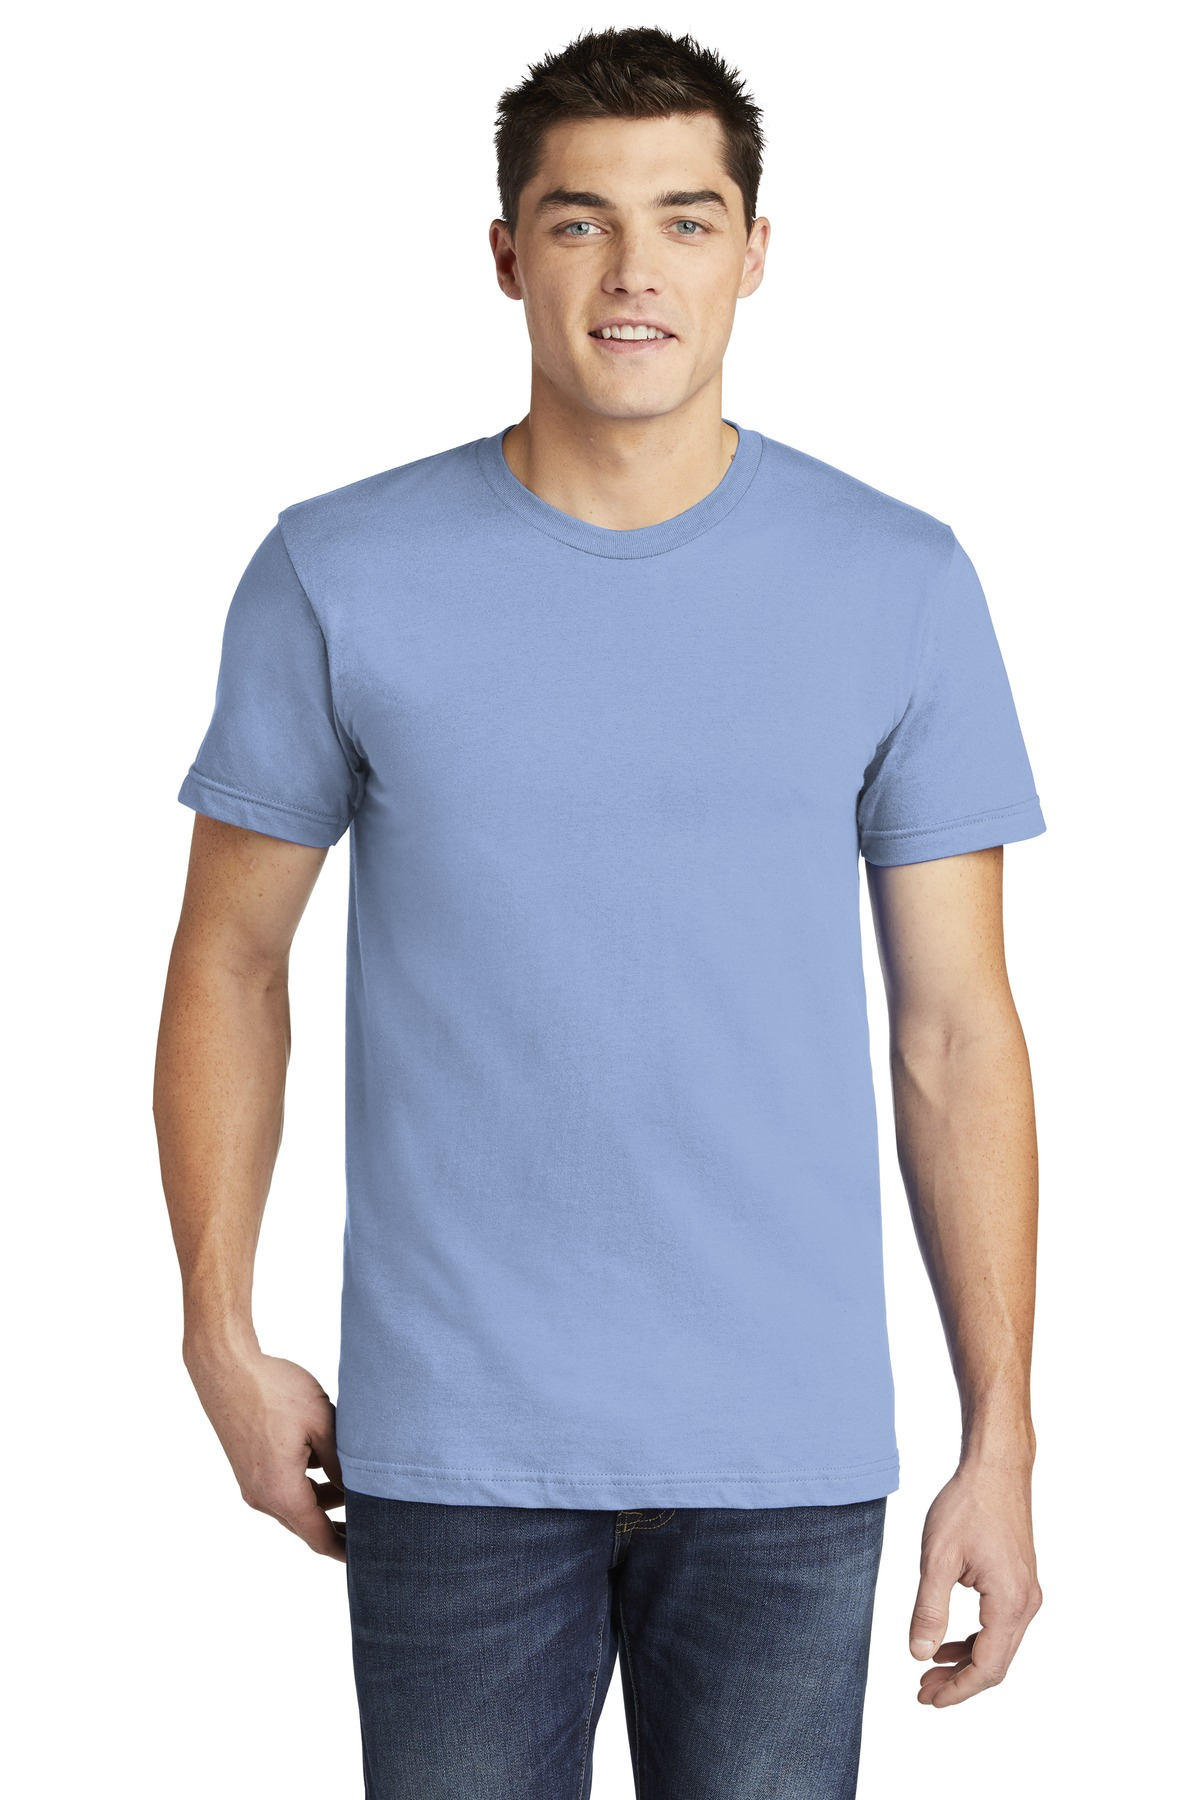 American Apparel  ®  USA Collection Fine Jersey T-Shirt. 2001A - Baby Blue